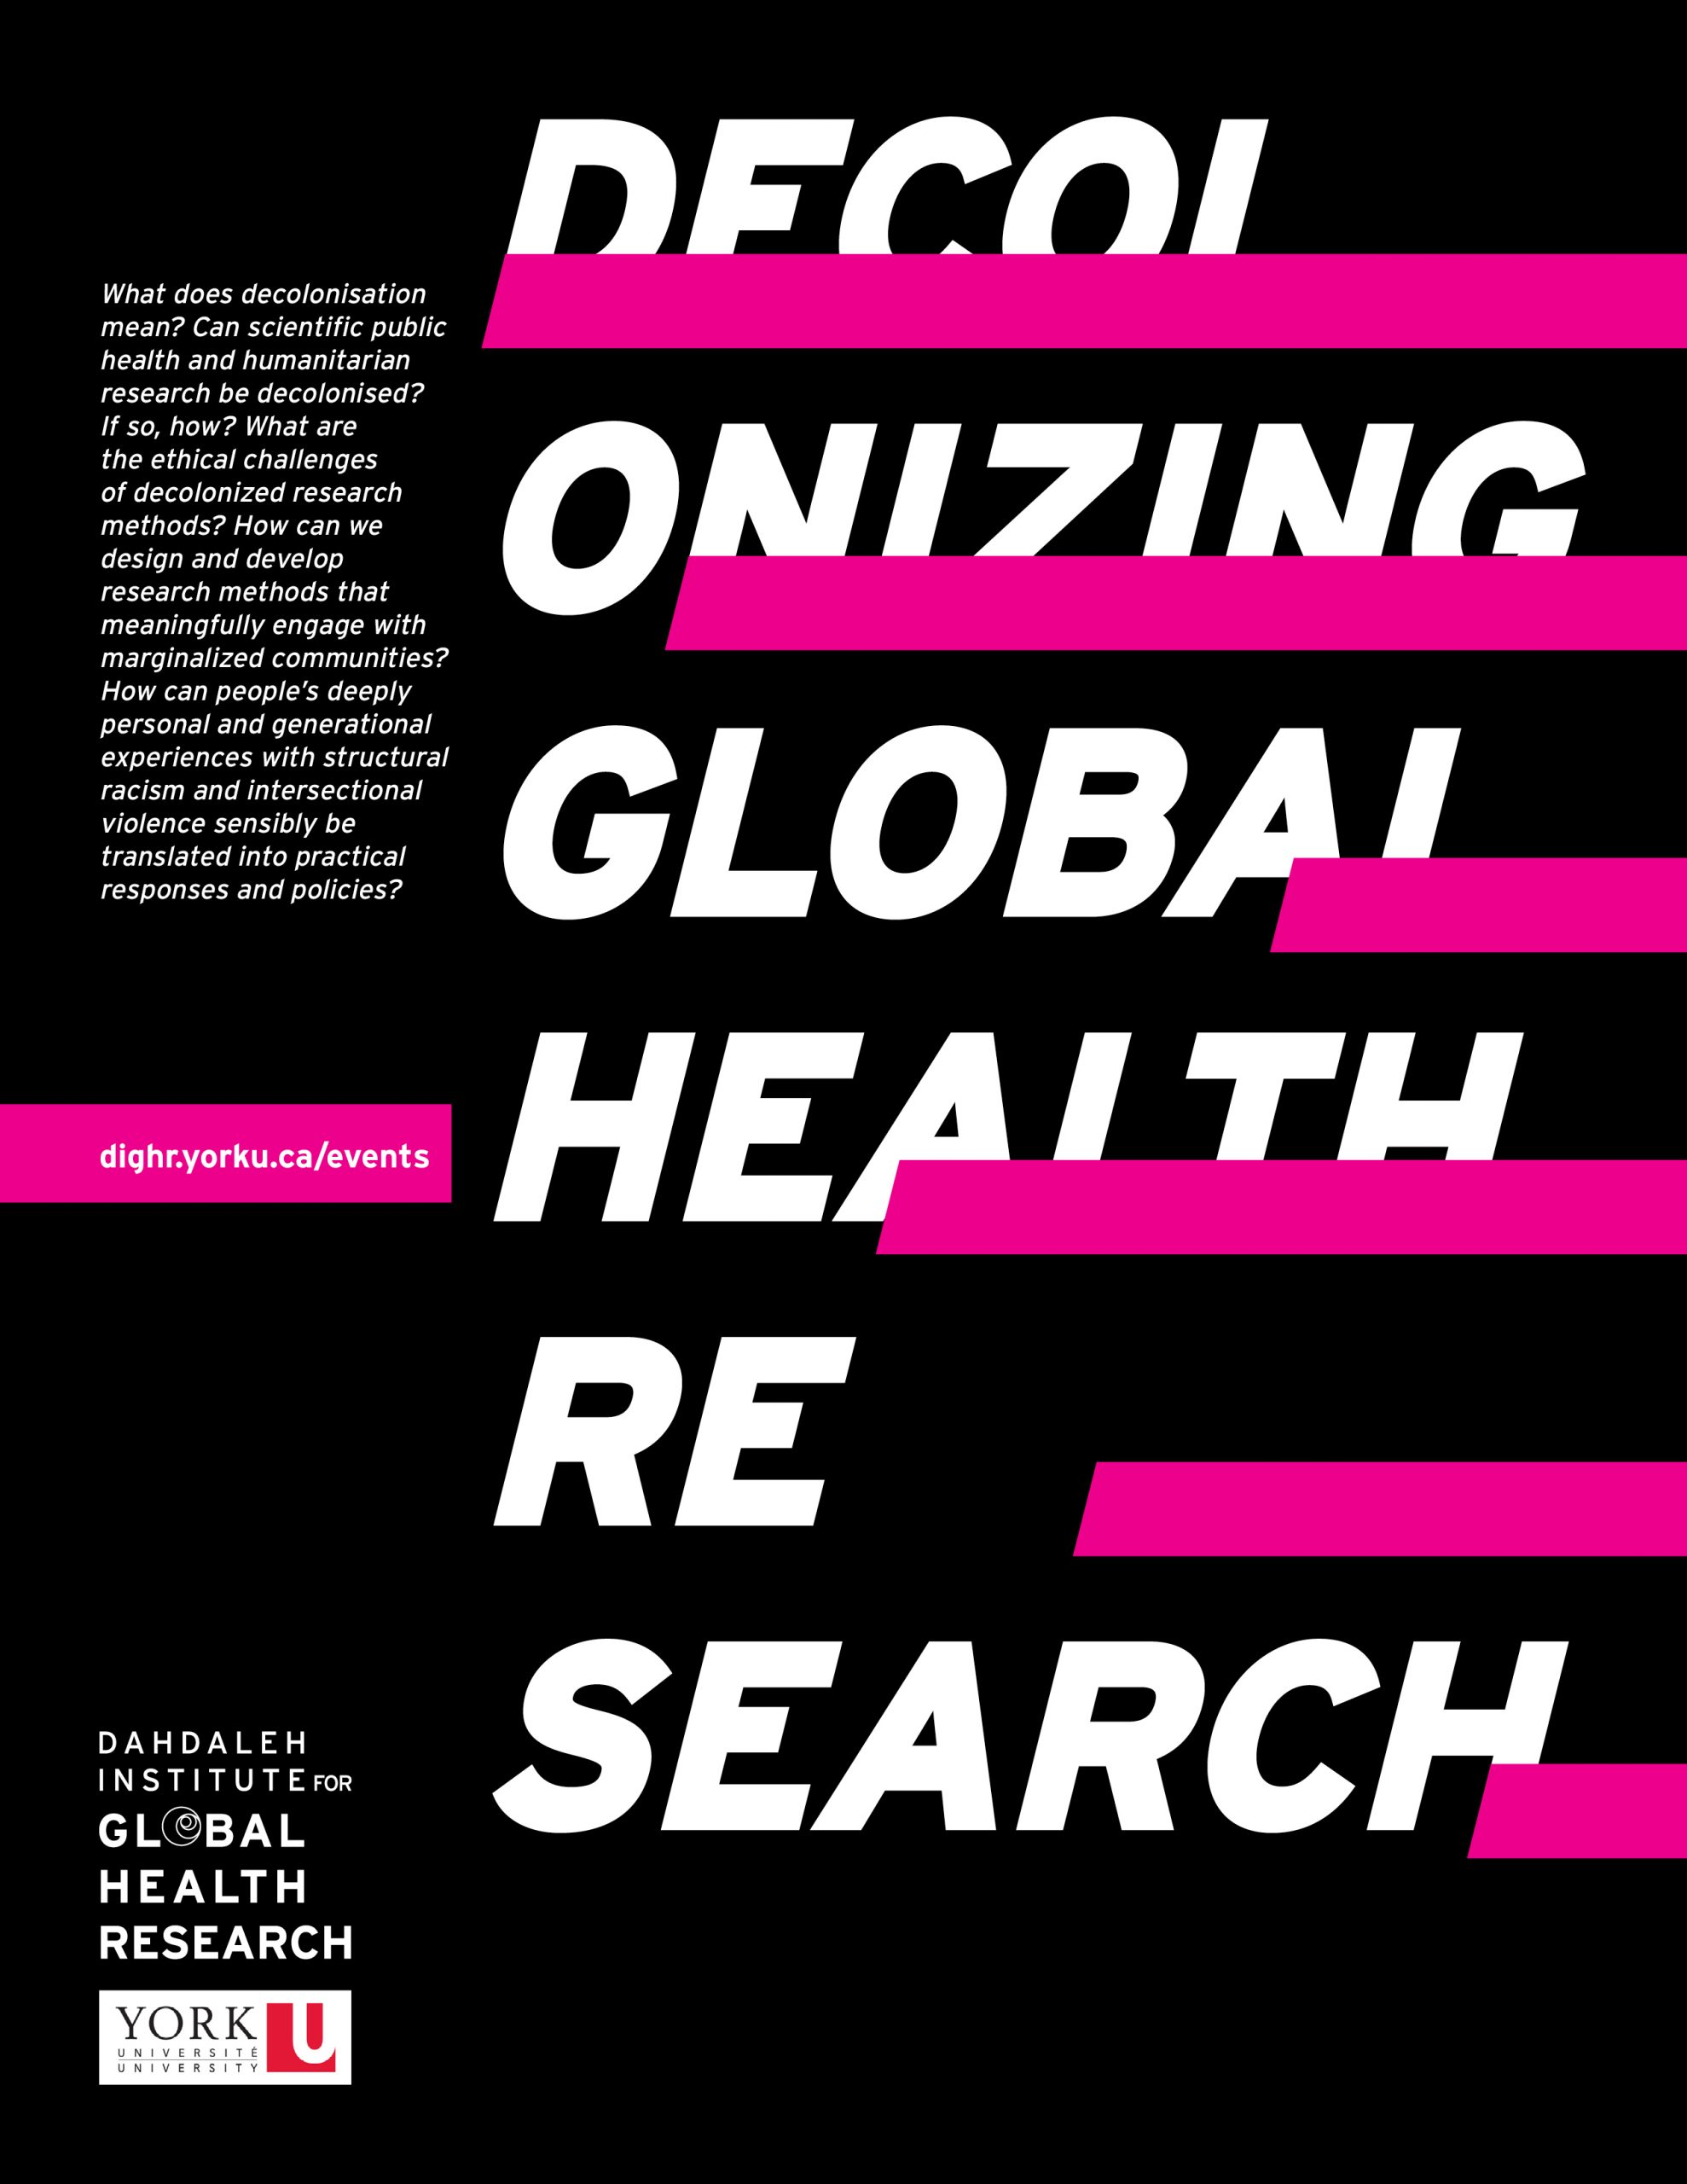 Decolonizing Global Health Research Poster